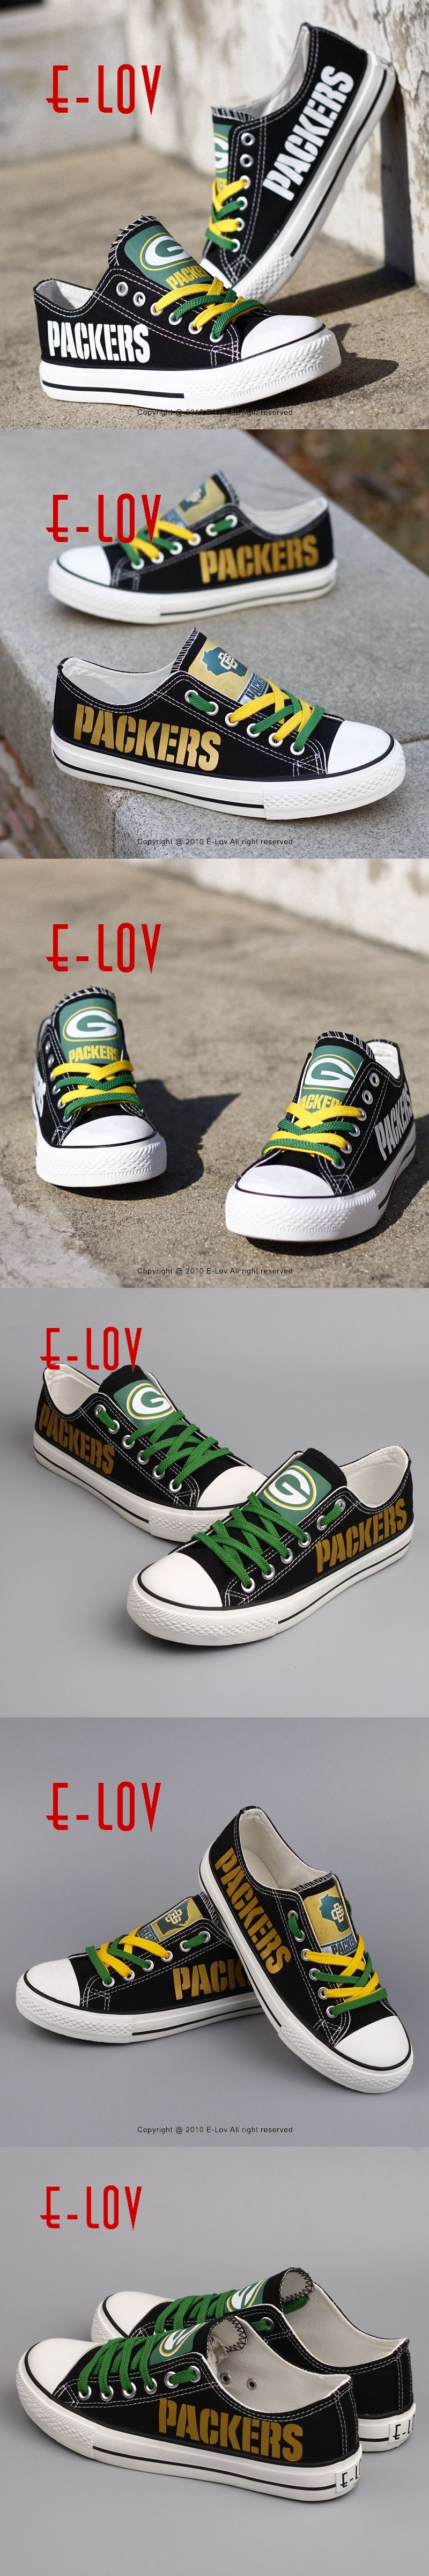 0d359d75d21 Wisconsin Green Bay Packers Super Bowl Printing Canvas Shoes Elite Aaron  Rodgers MVP Champ Fans Customize